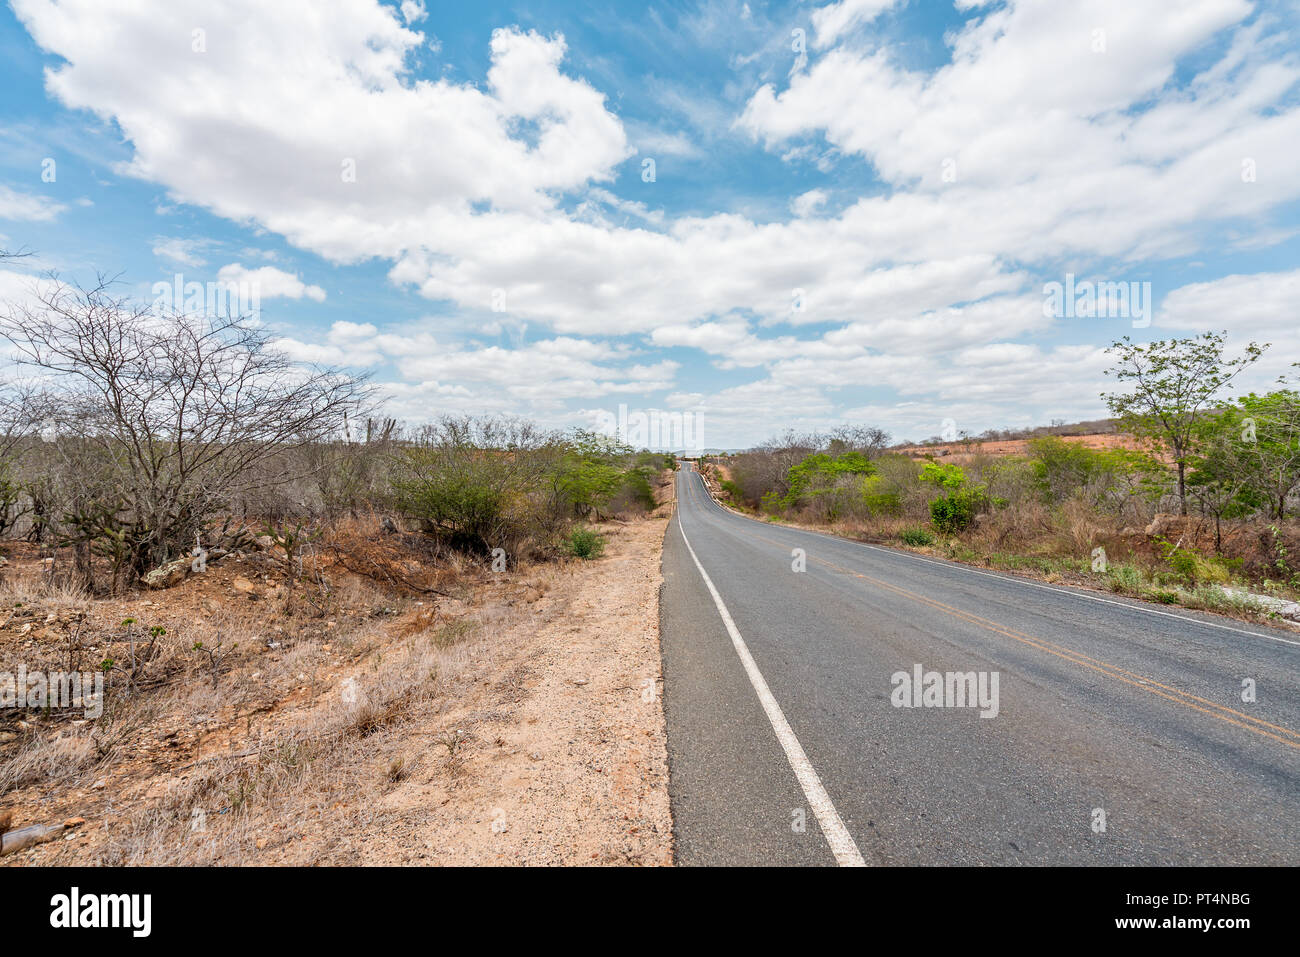 Cabaceiras, Paraíba, Brazil - February, 2018: Road to infinite with Cactus in a Caatinga Biome at Northeast of Brazil Stock Photo